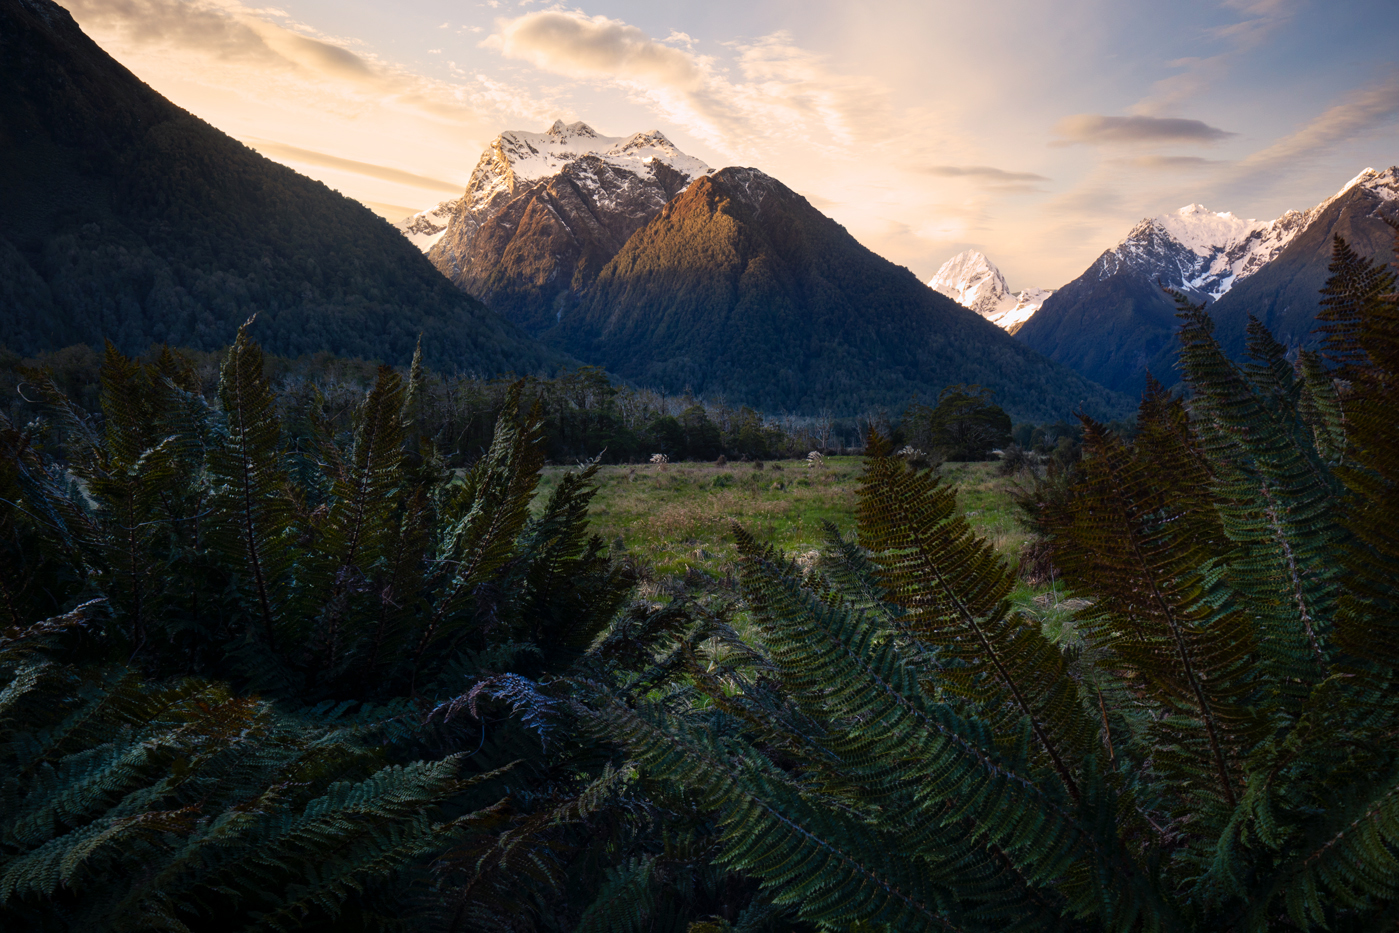 The Eglinton Valley, Fiordland New Zealand